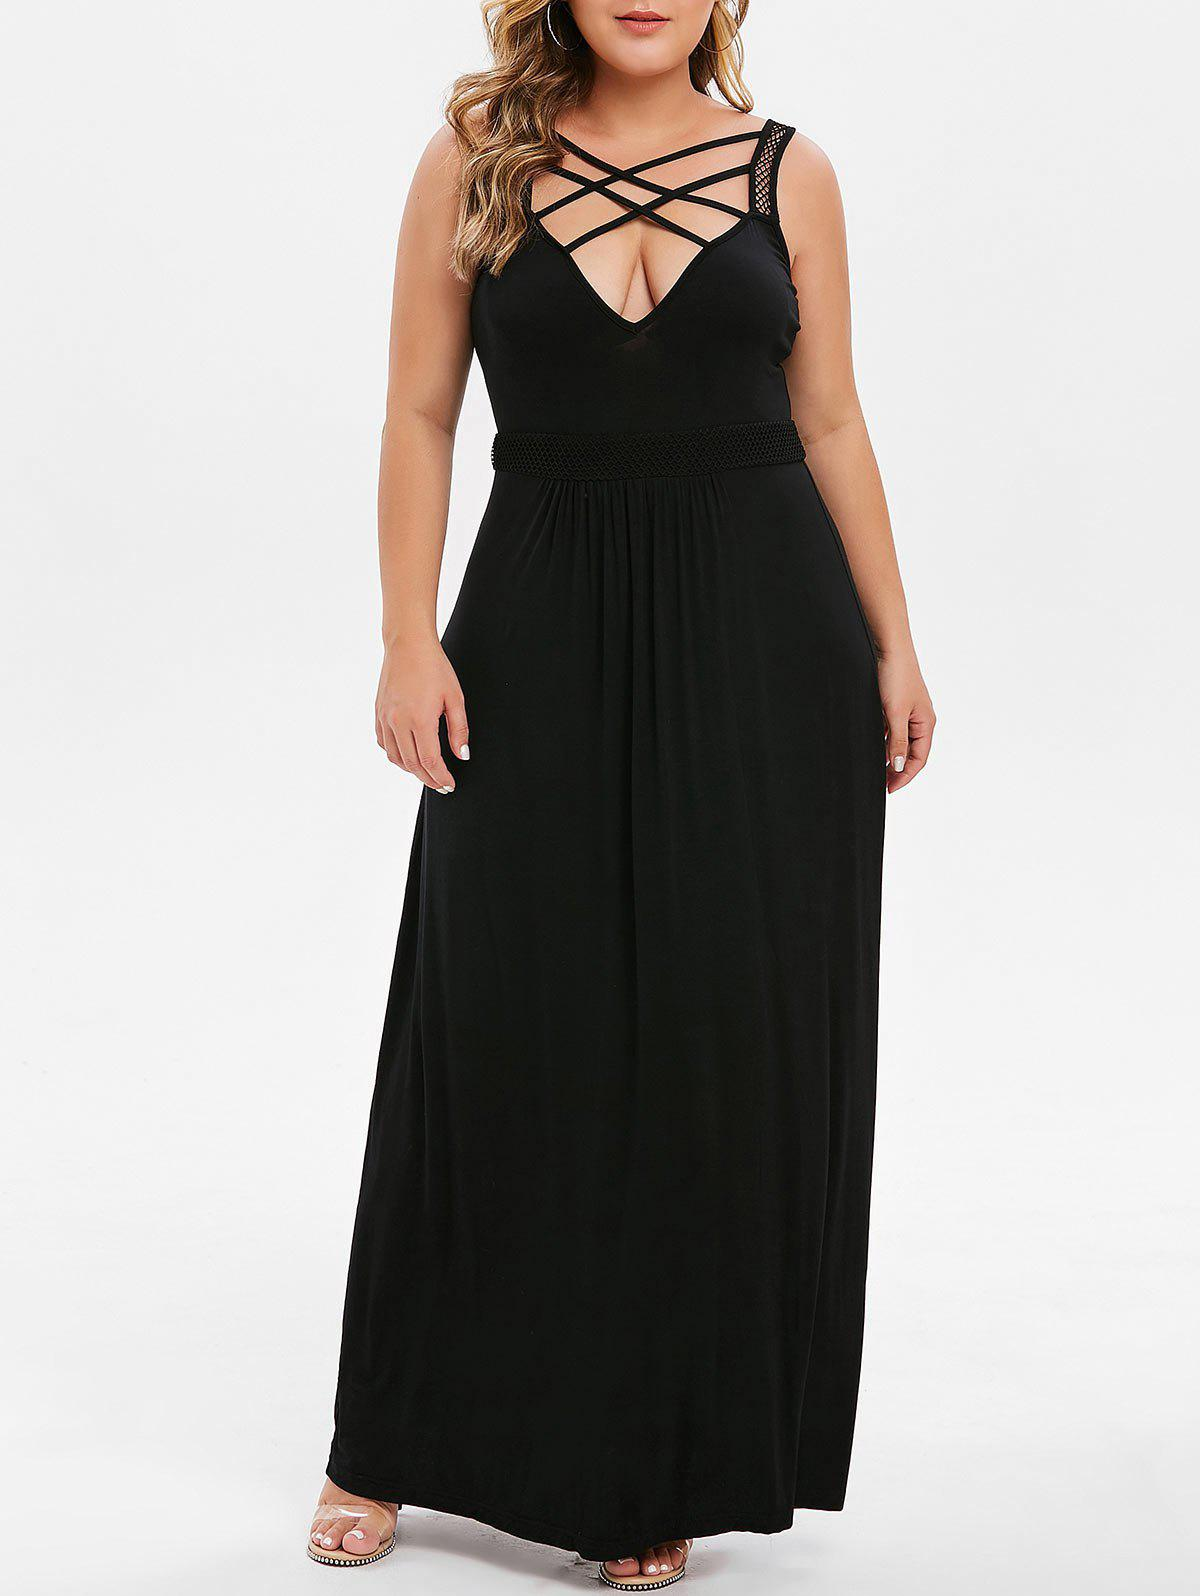 Plus Size Plunging Neckline Criss Cross Maxi Dress